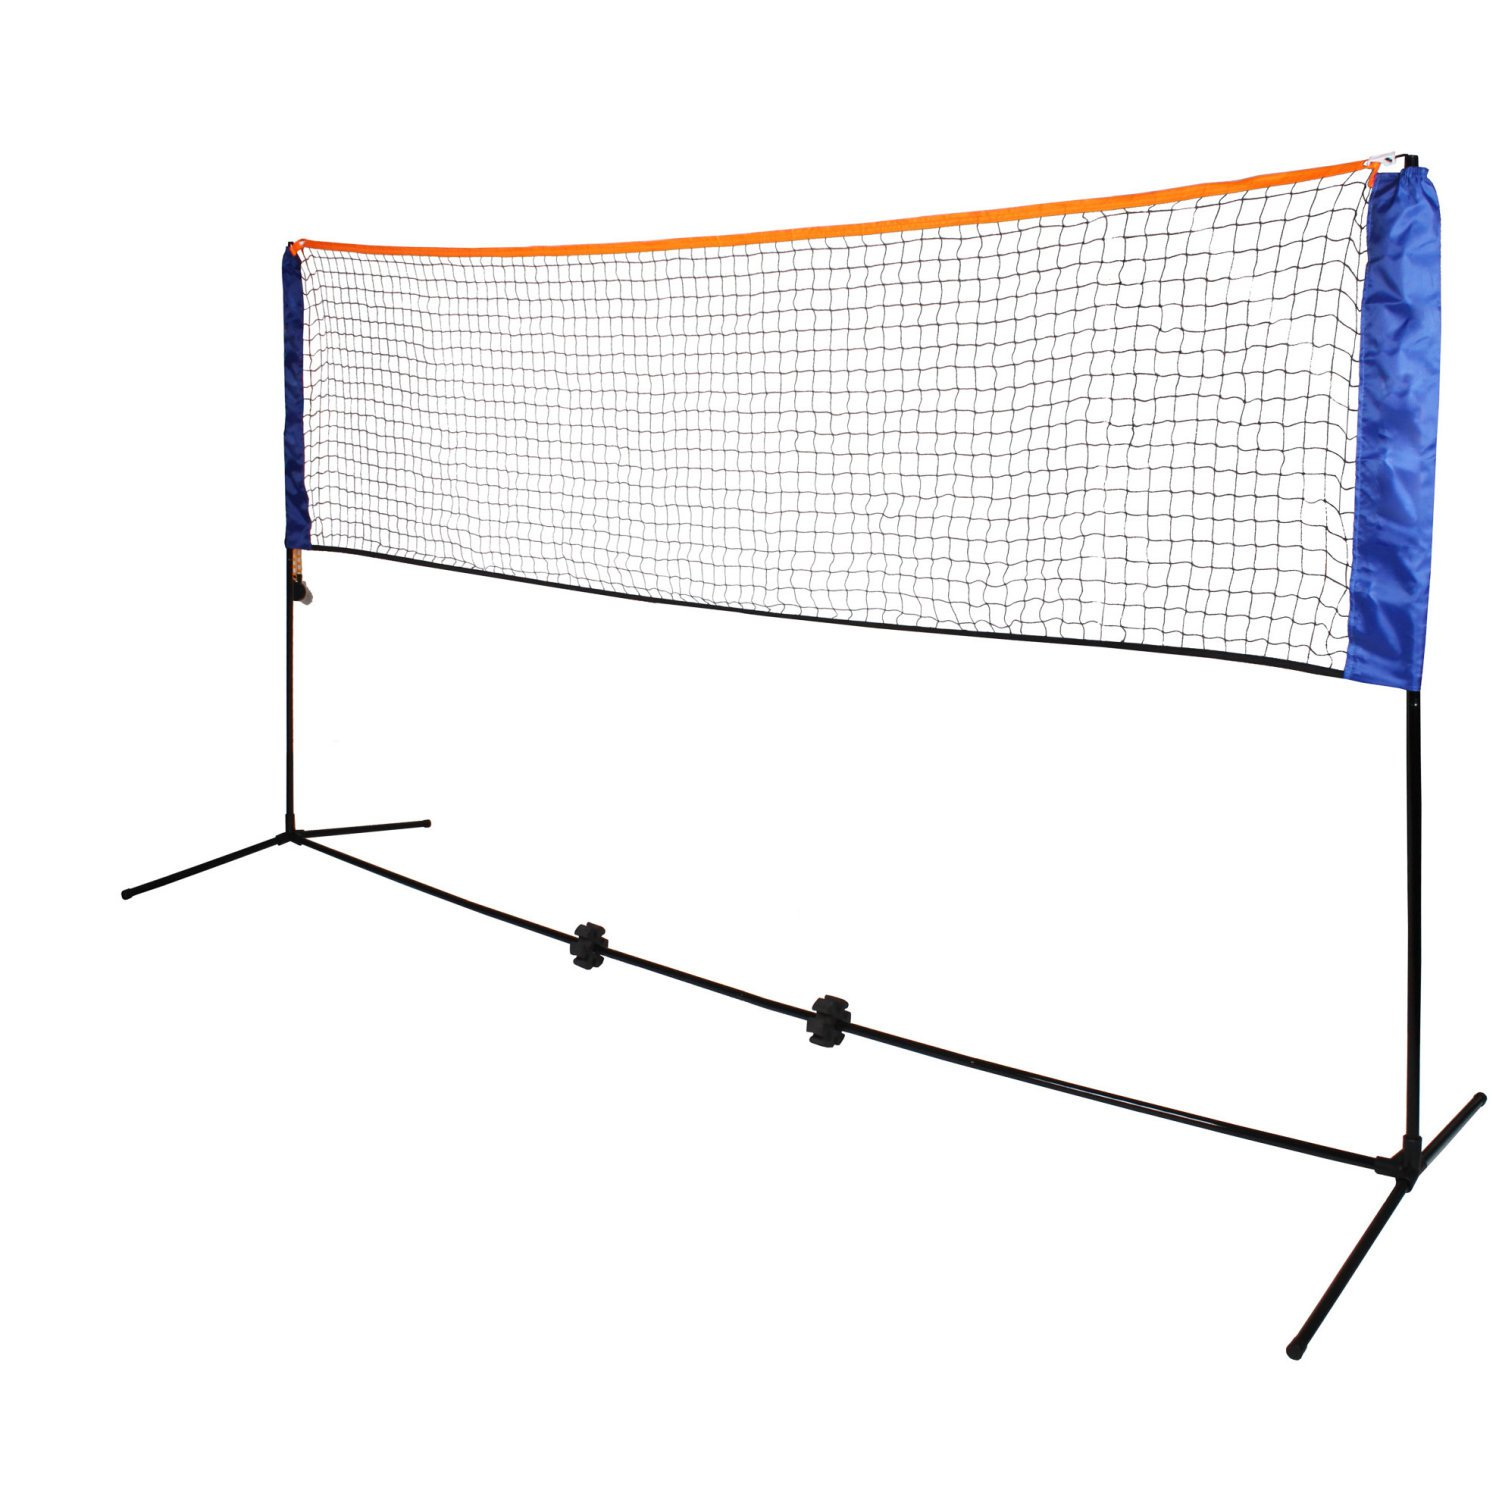 Medium 4m Adjustable Foldable Badminton Tennis Volleyball Net